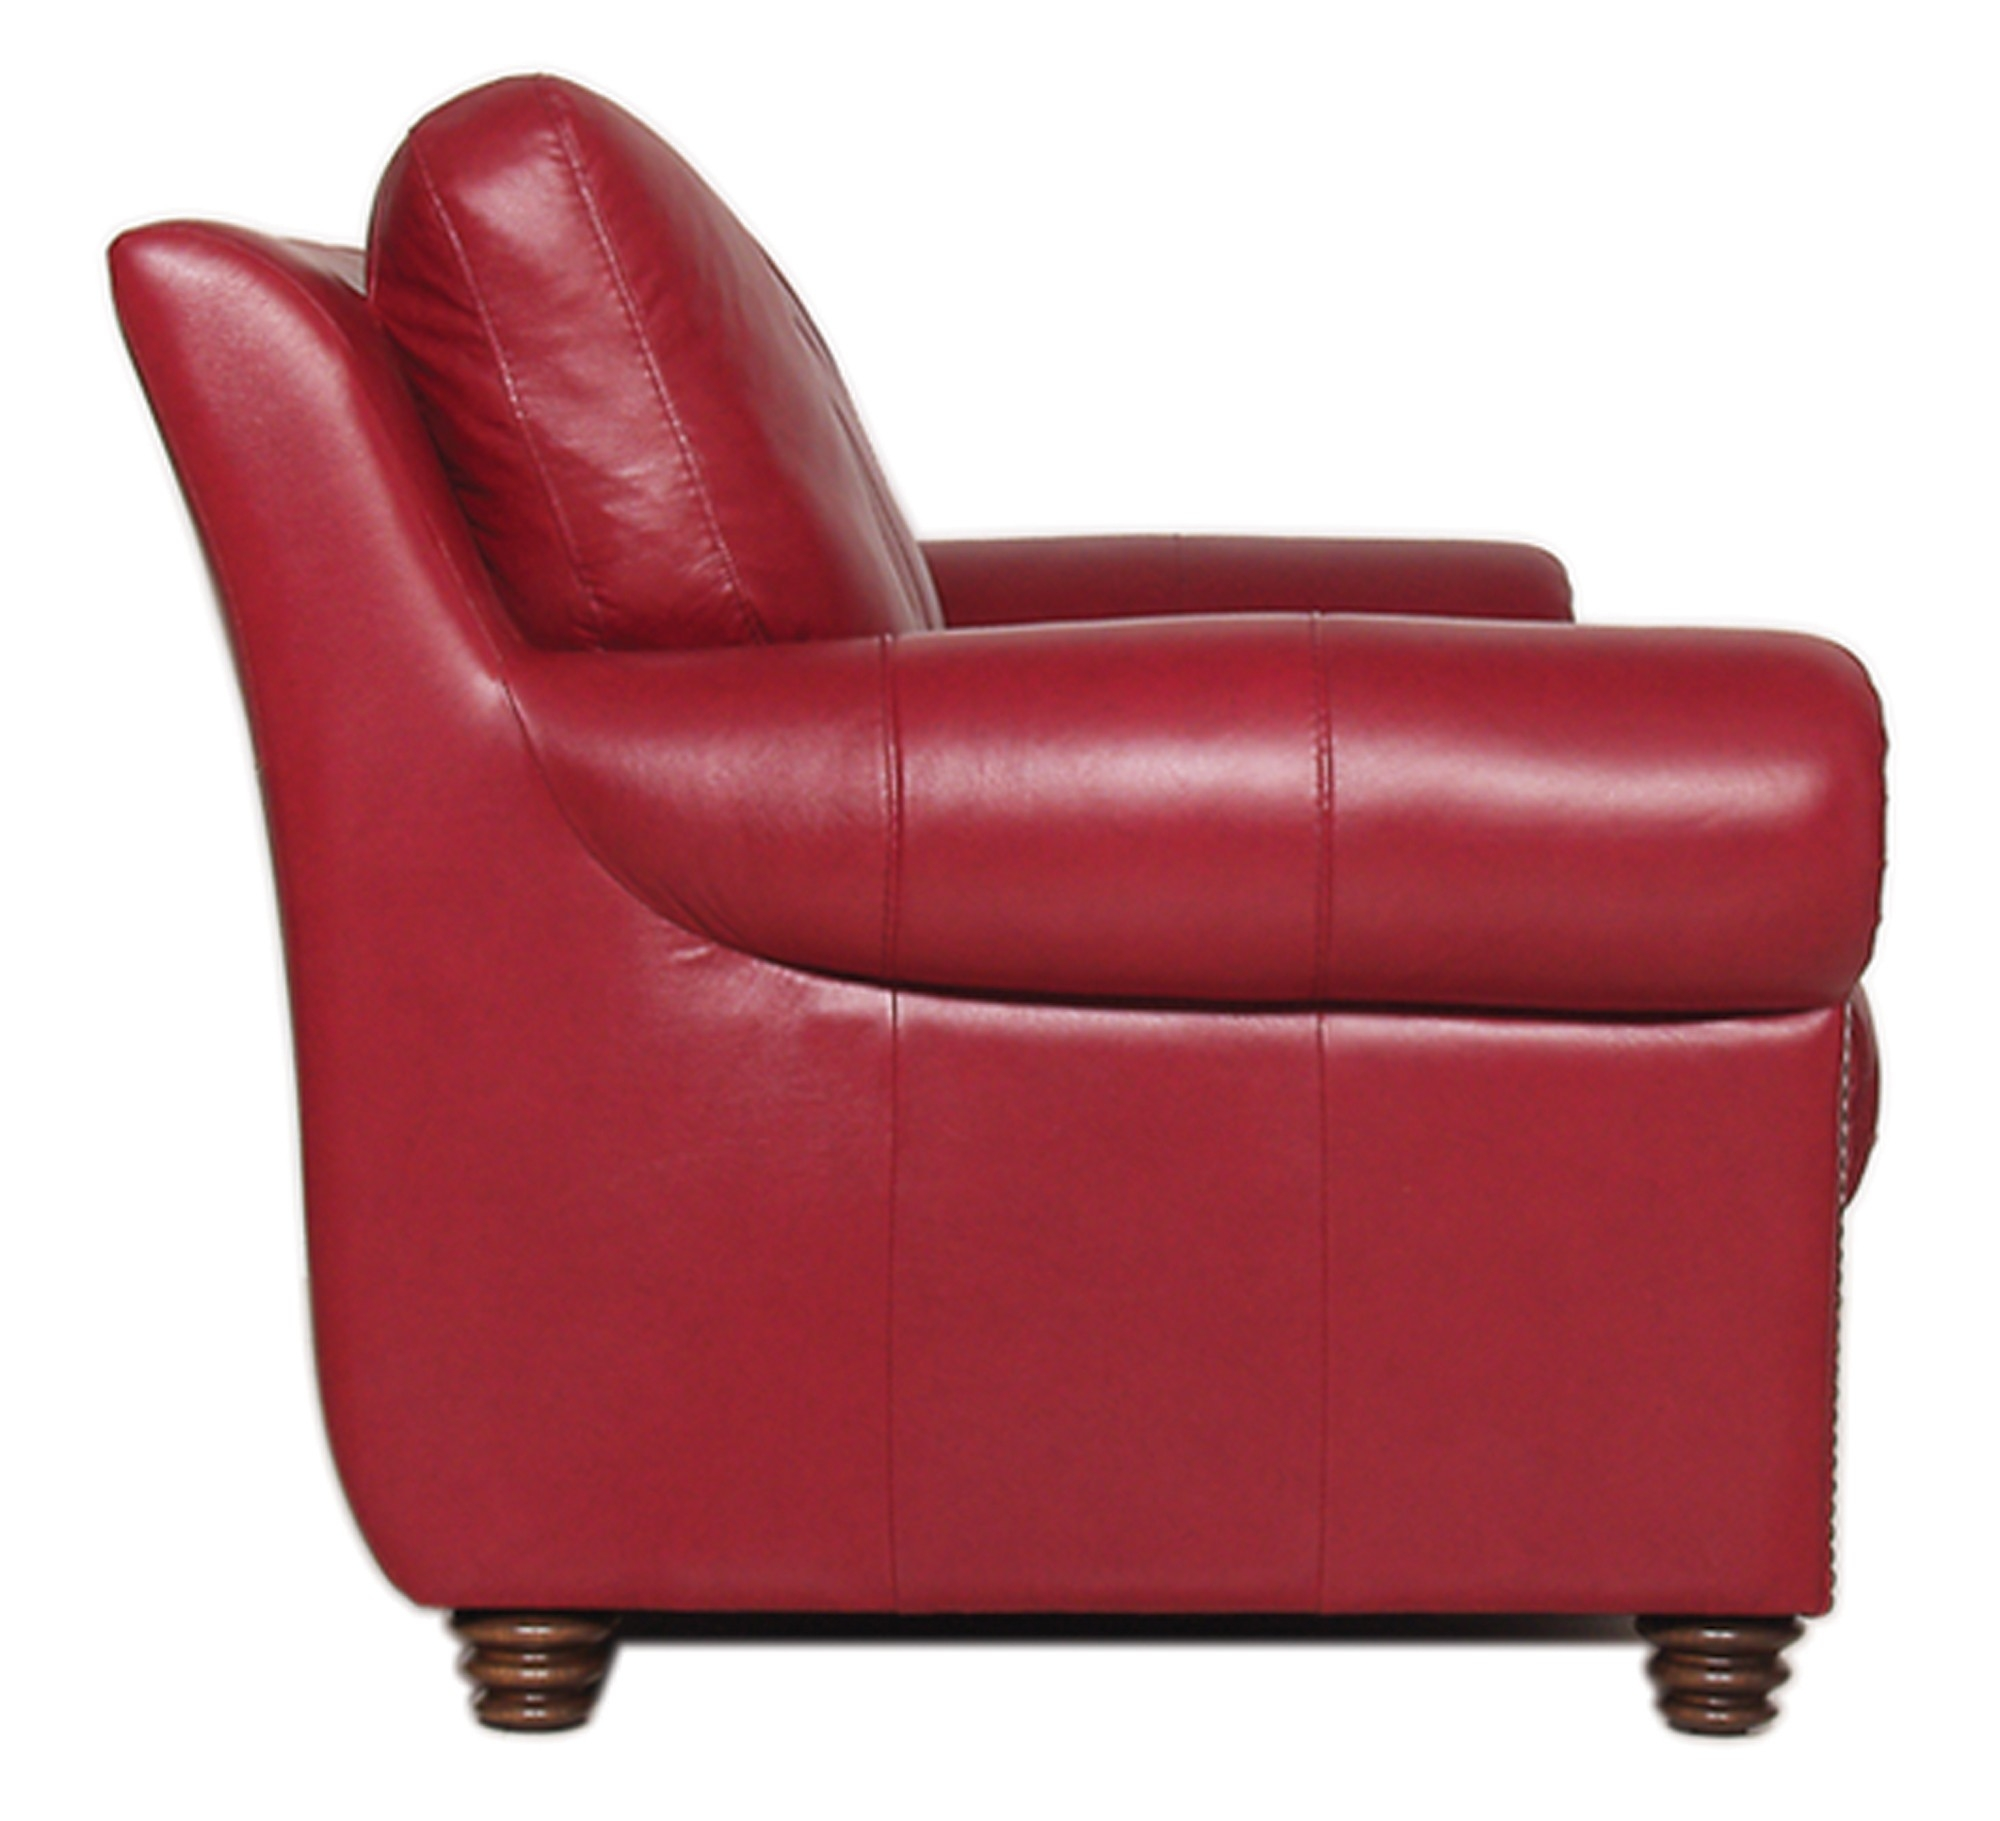 Sofas Center 401alomkc 1 Leather Sofa Chair Cheap Chairs For Cheap Sofa Chairs (Image 15 of 15)